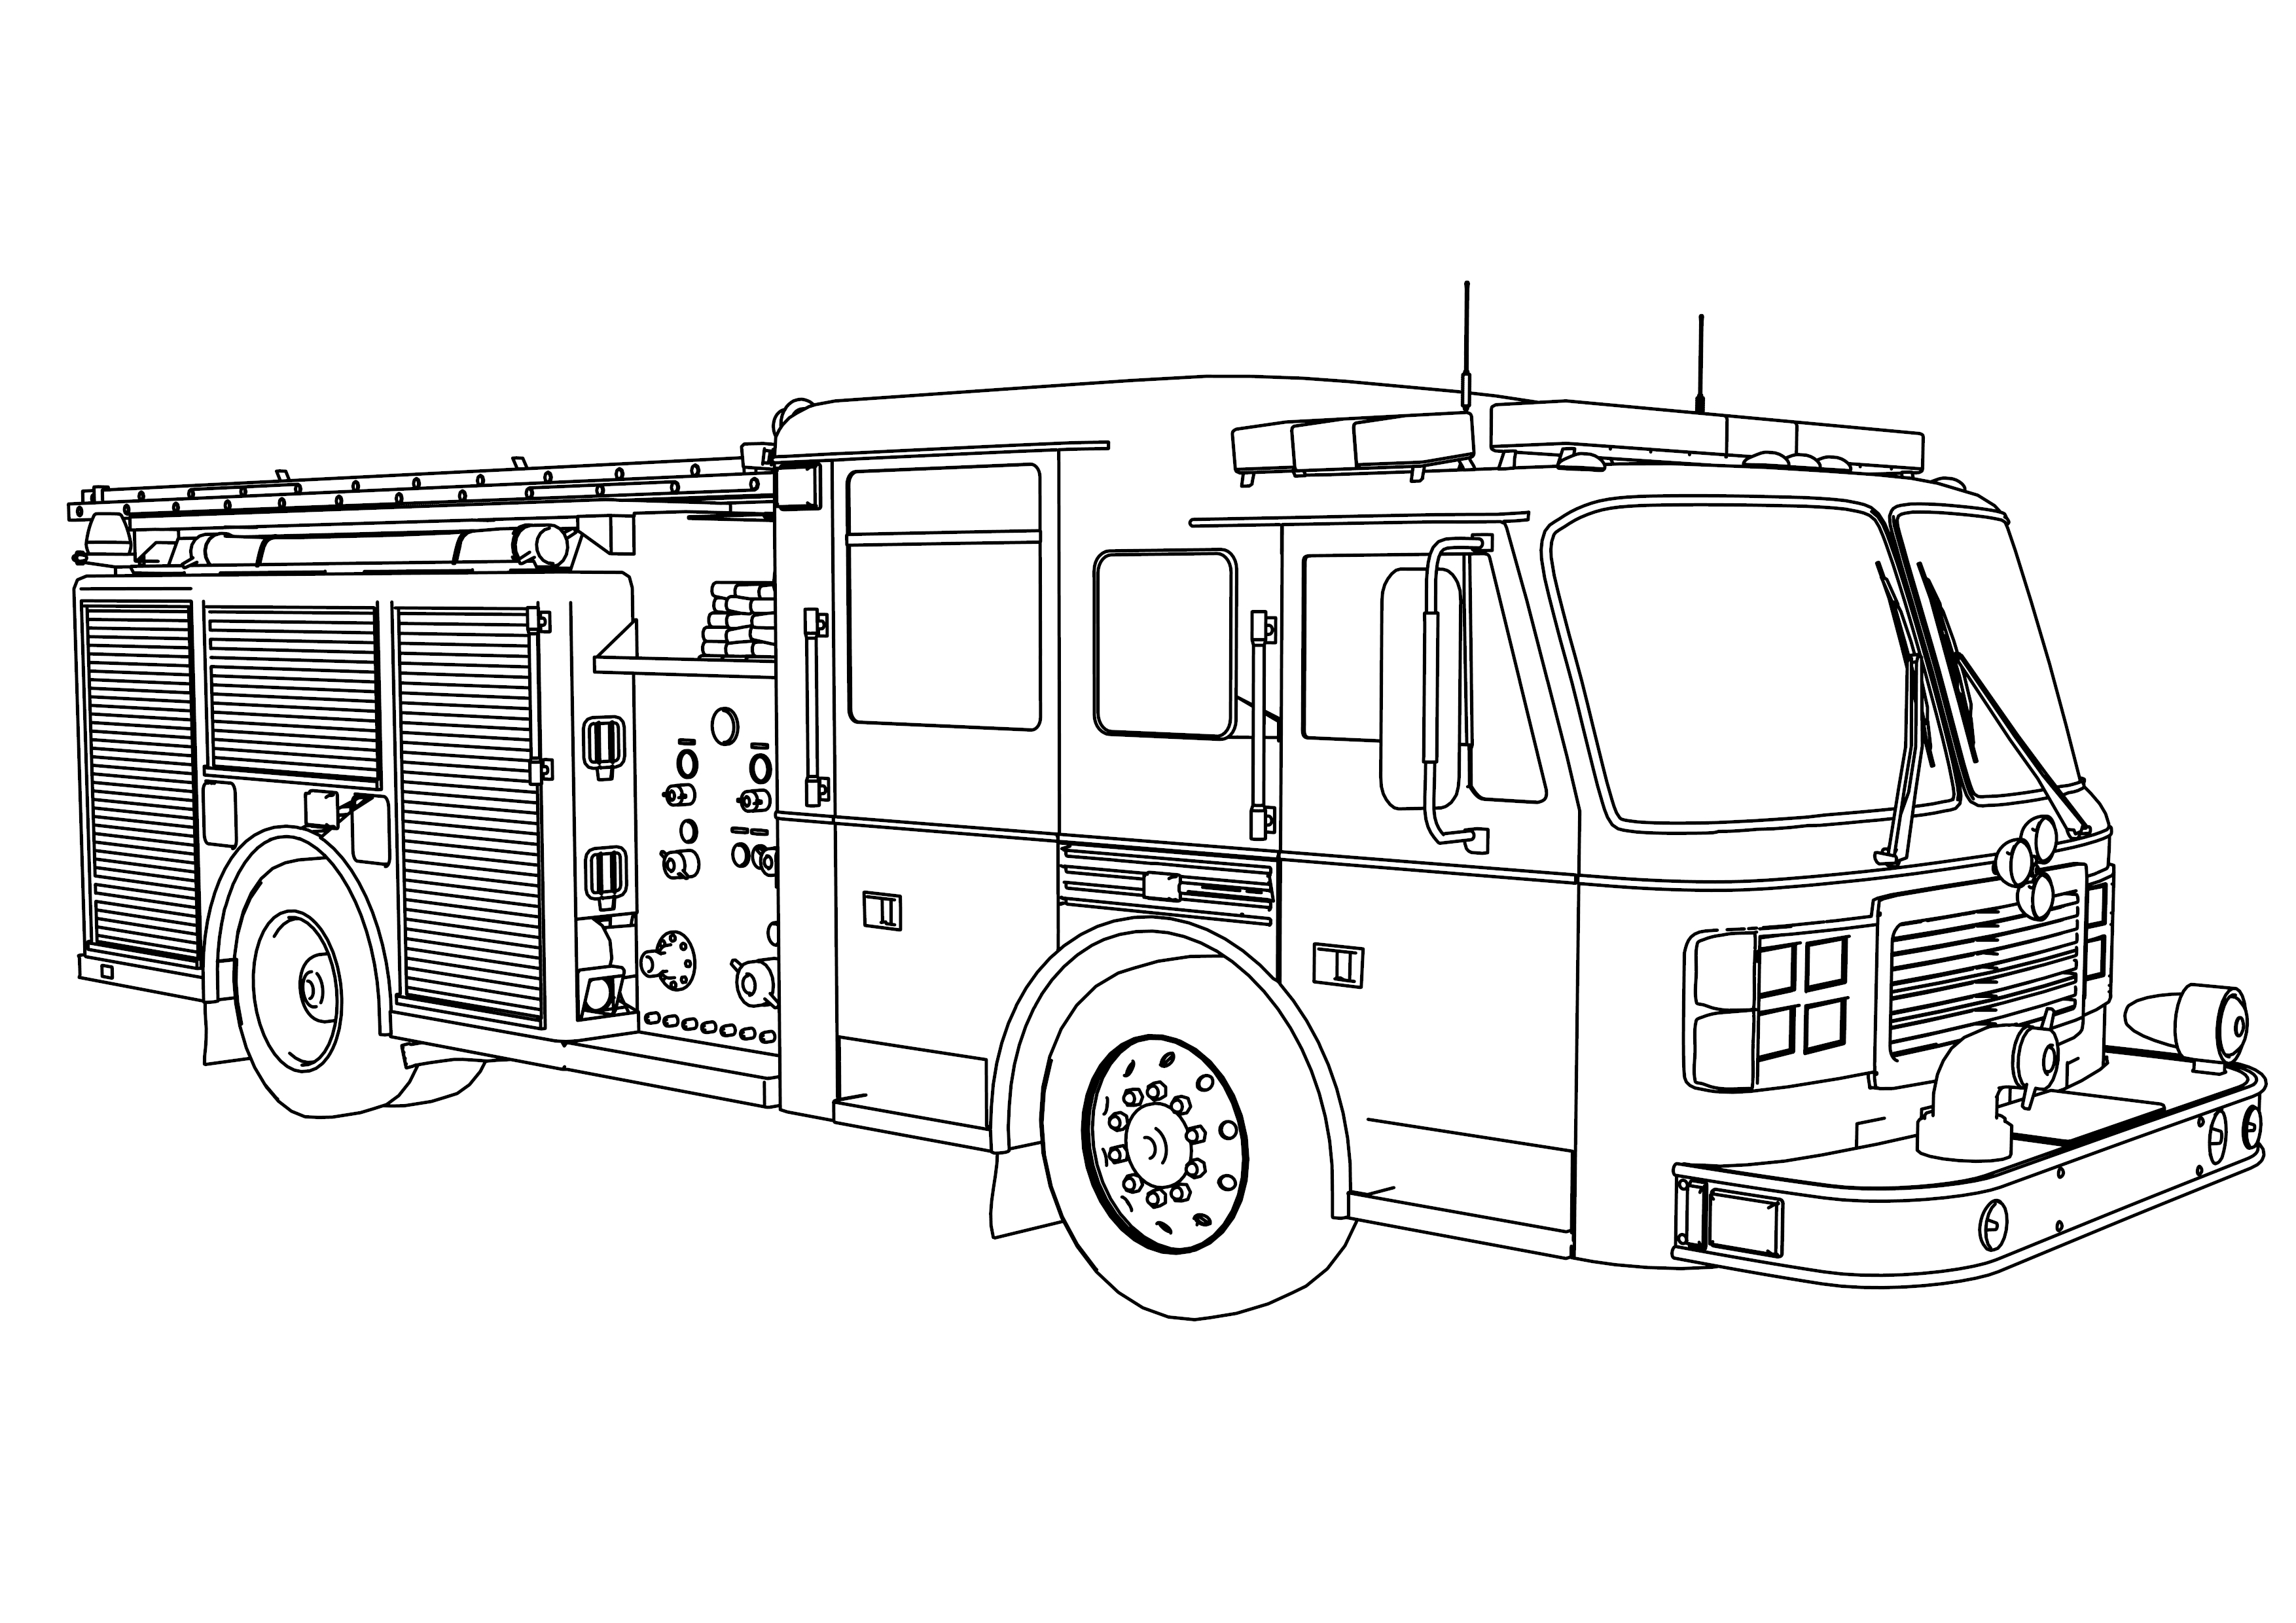 free fire truck coloring pages free printable fire truck coloring pages for kids free truck fire coloring pages